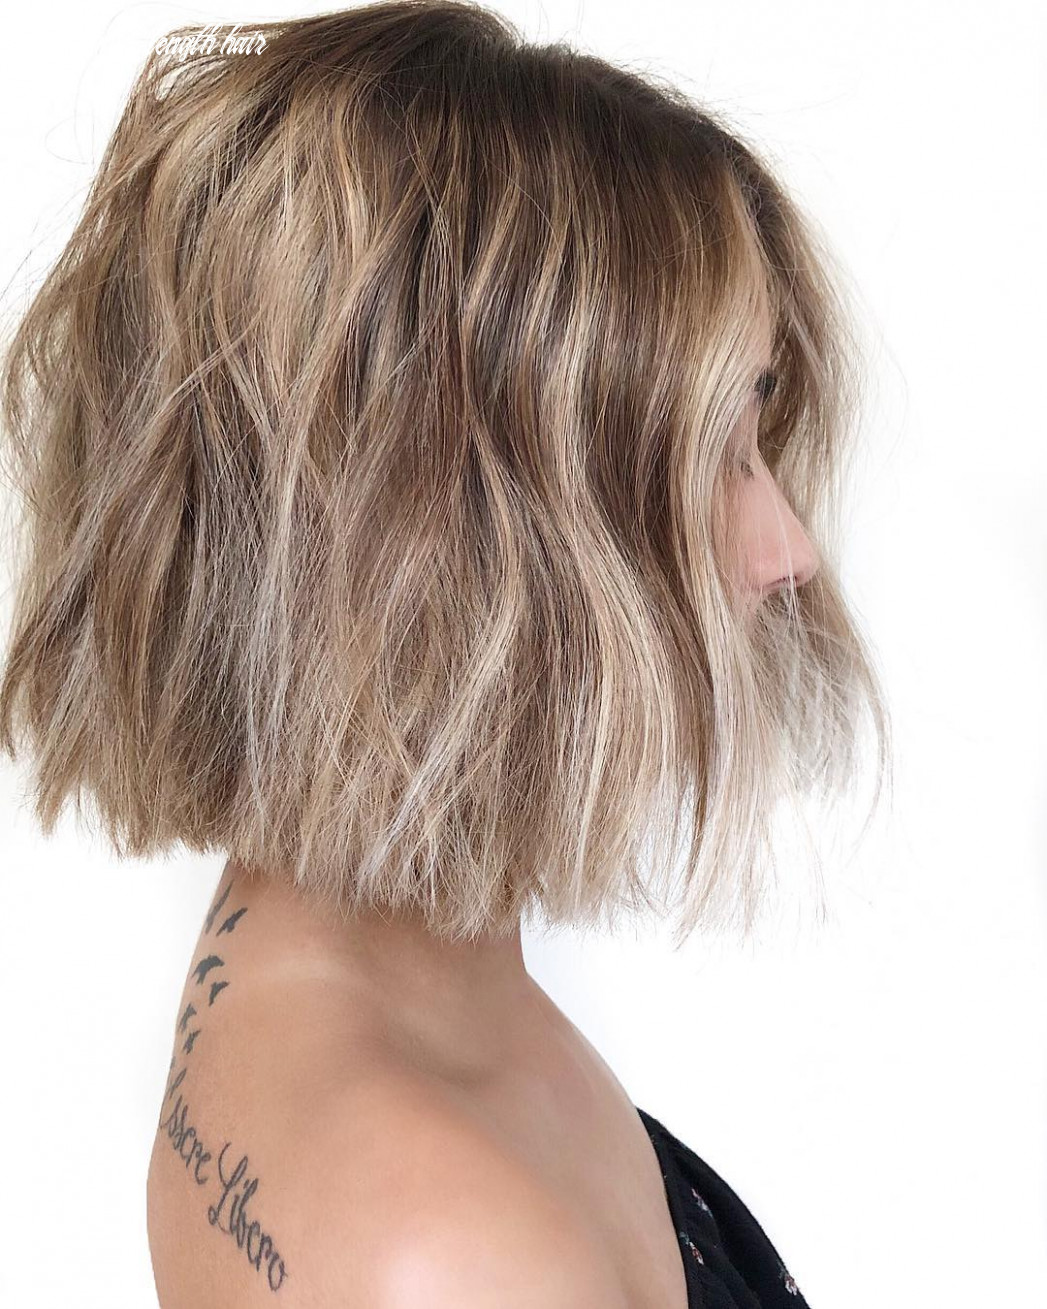 10 trendy messy bob hairstyles and haircuts, 10 female short